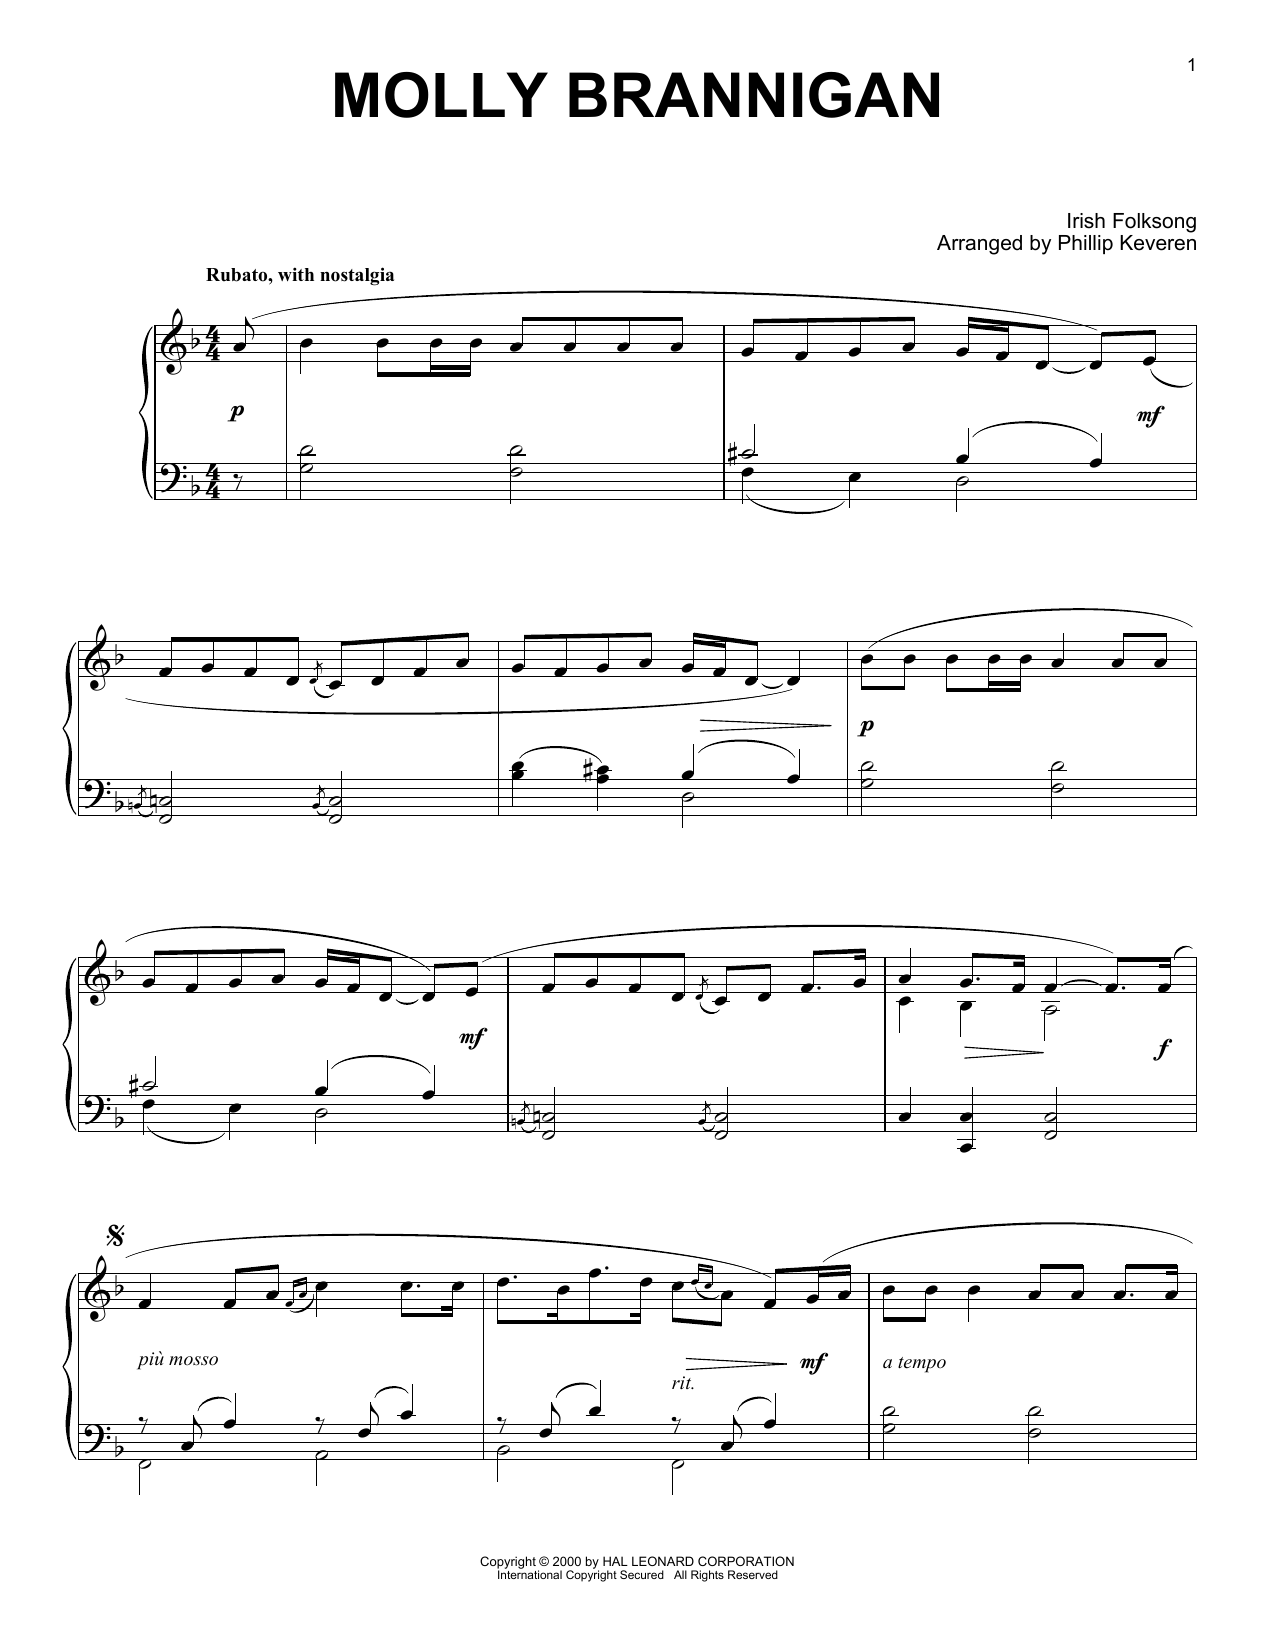 Download Irish Folksong 'Molly Brannigan (arr. Phillip Keveren)' Digital Sheet Music Notes & Chords and start playing in minutes